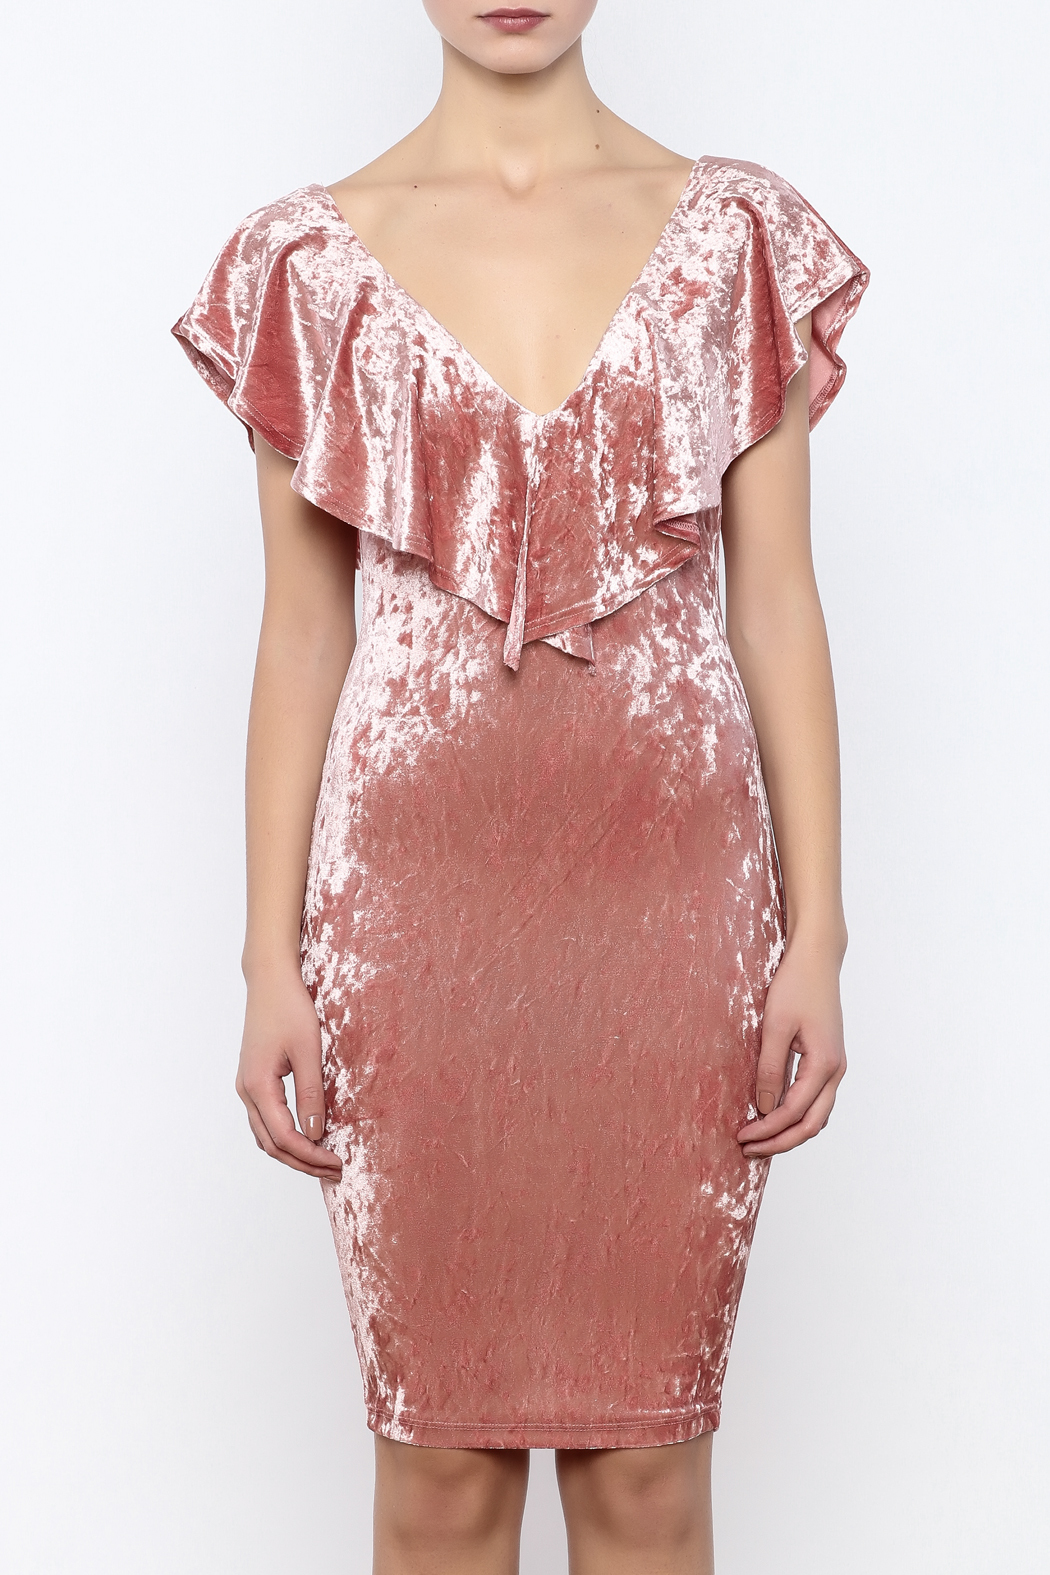 Privy Pink Velvet Dress From Montclair By That Little